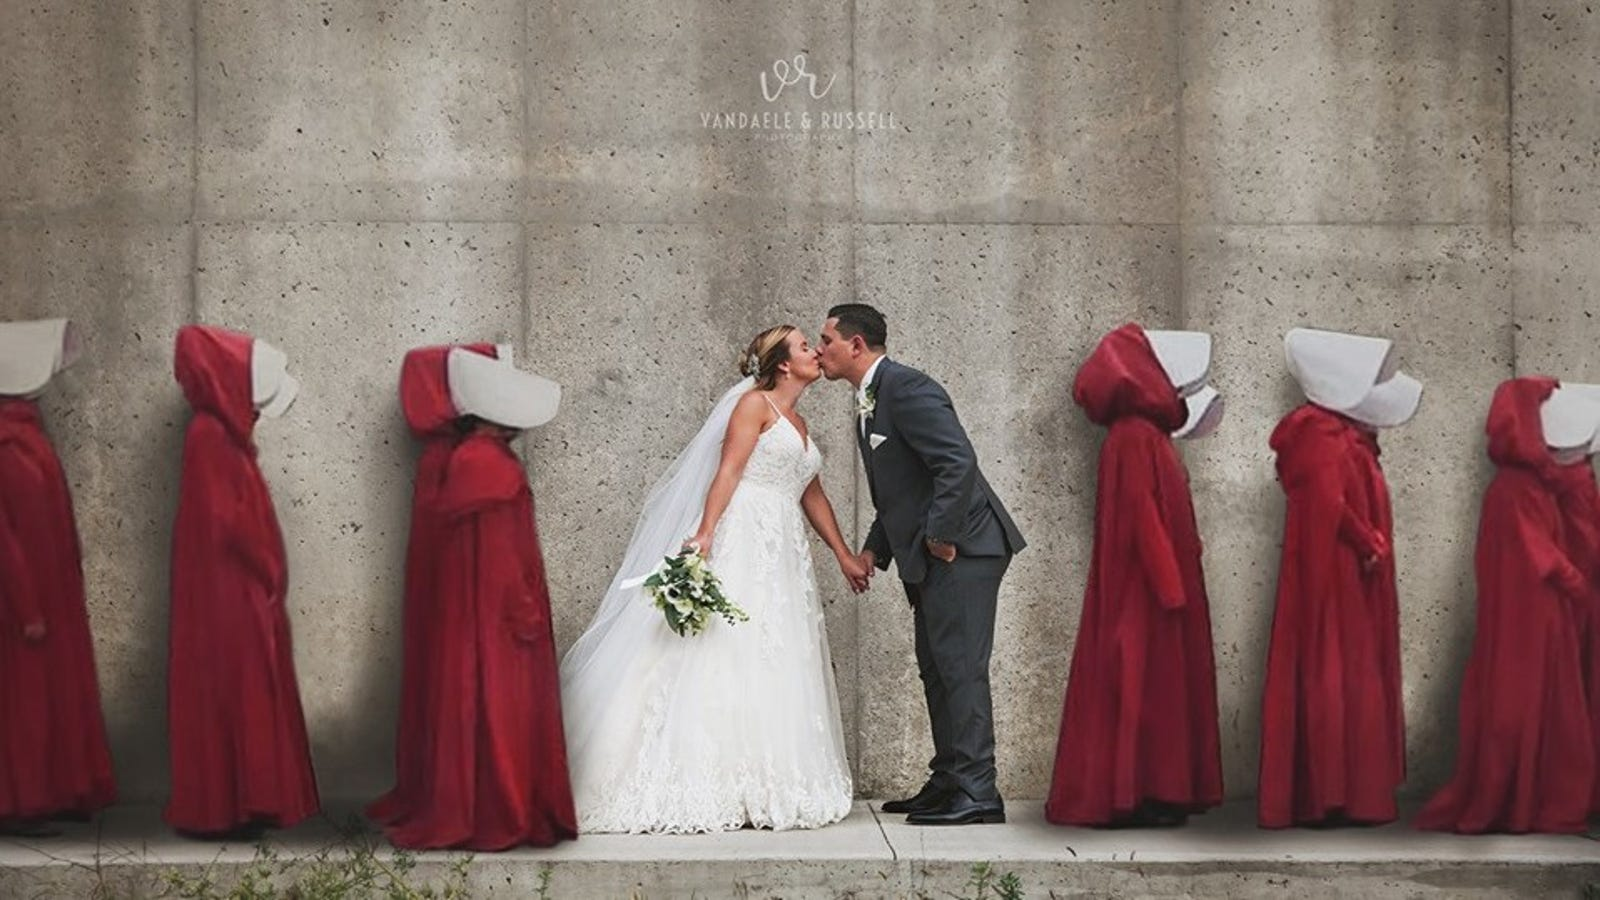 Is This Handmaid's Tale Wedding Portrait Too On the Nose?